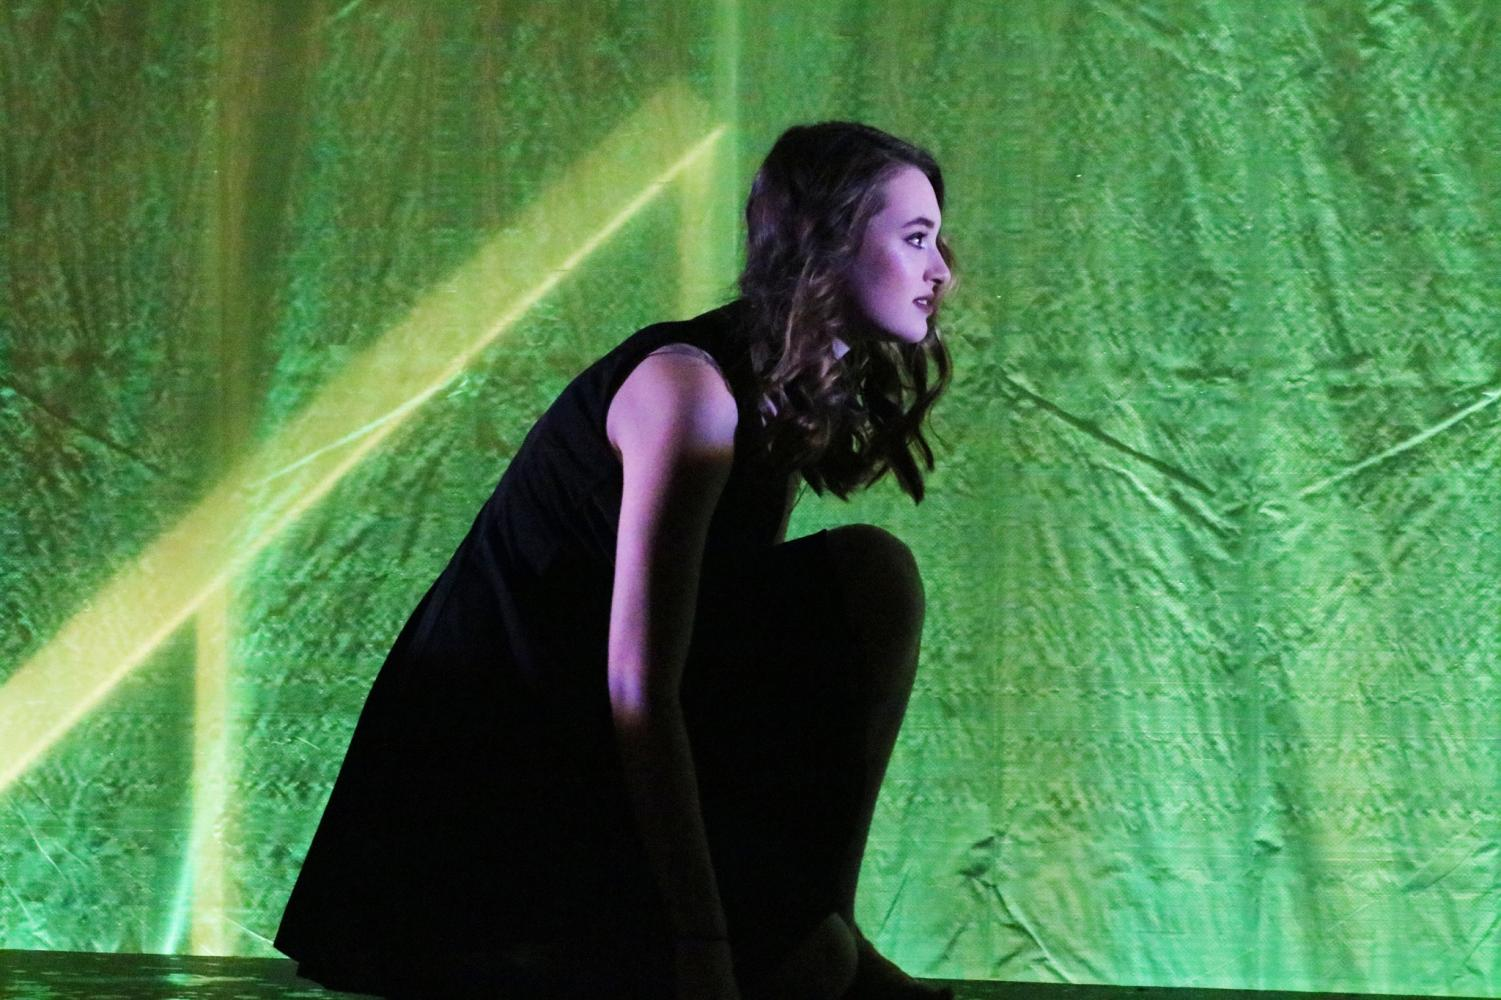 Allie Moreton, junior, has acted and helped direct many school shows such as